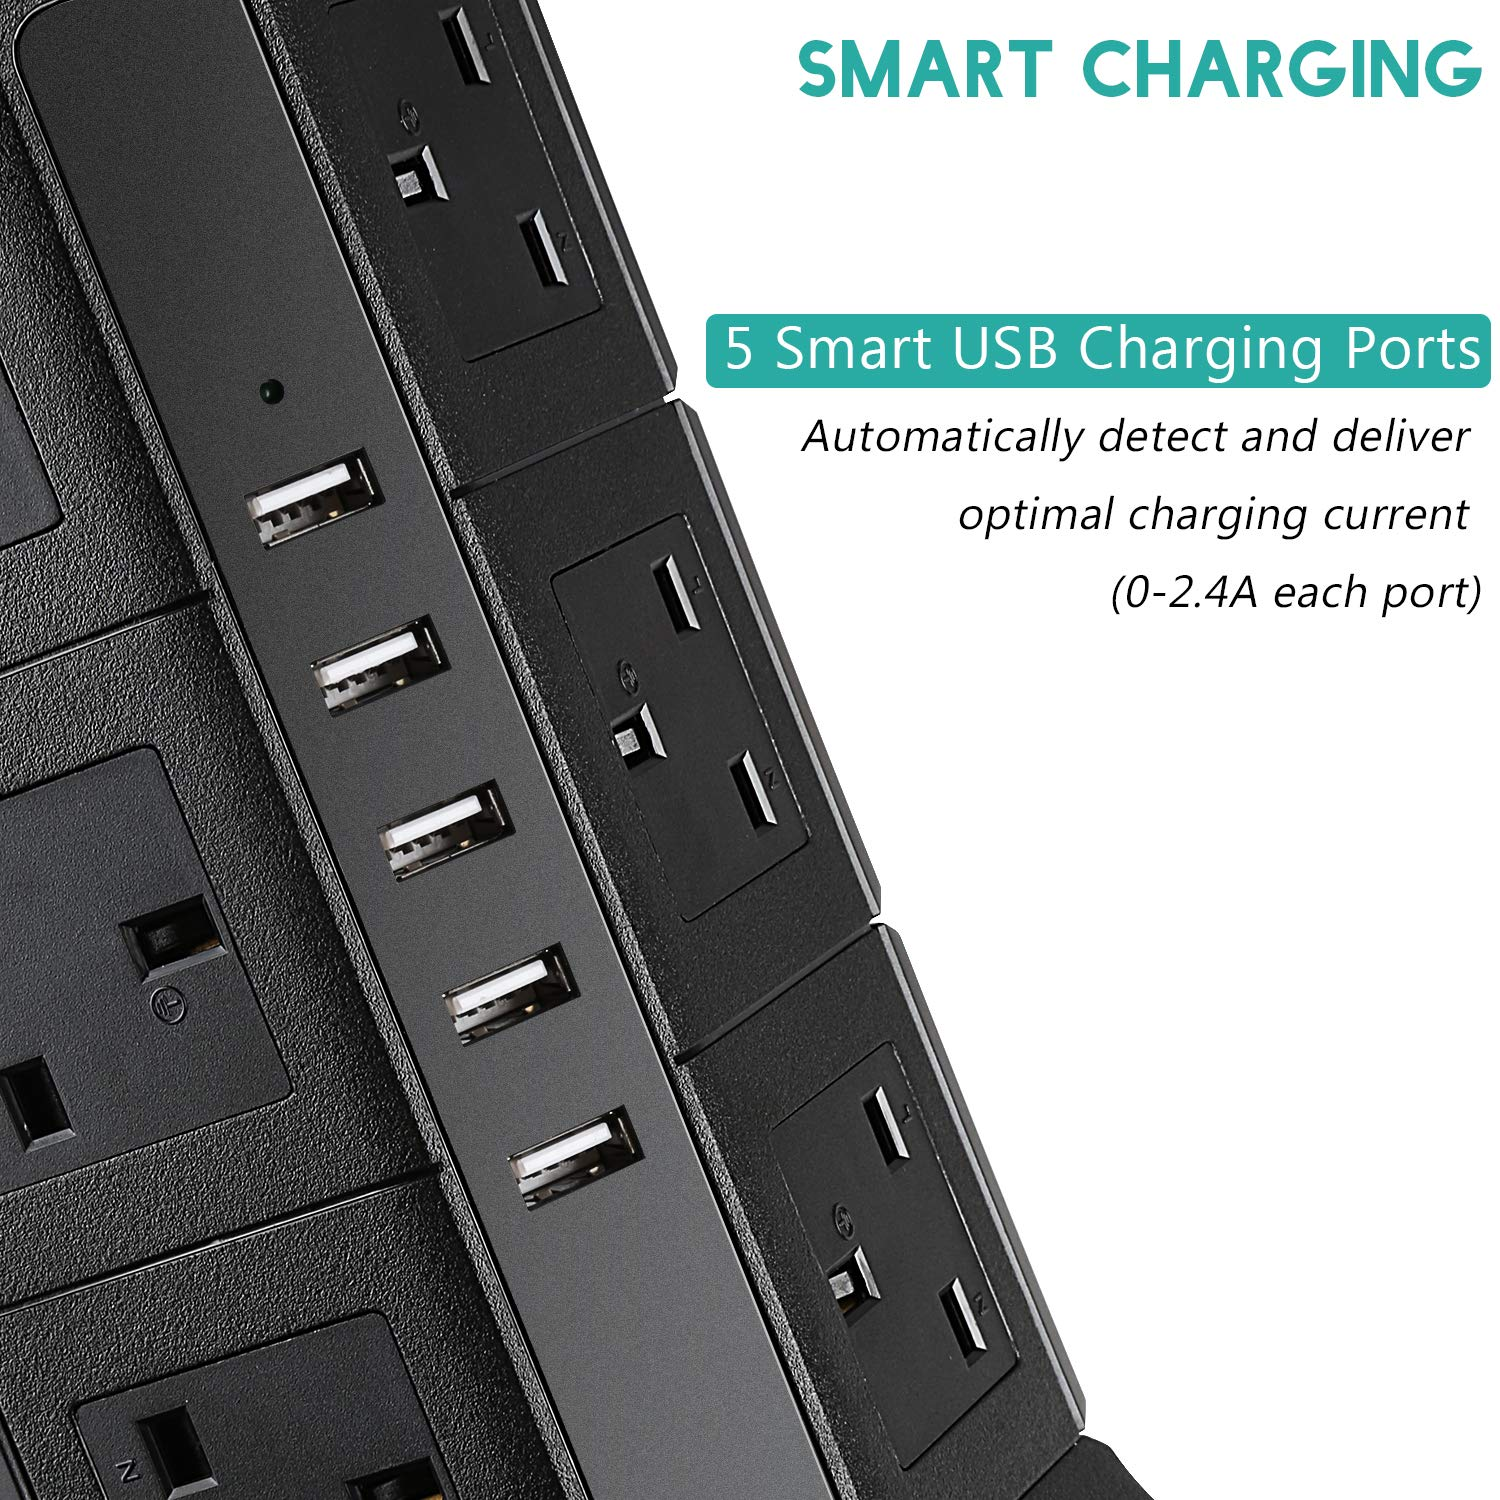 Extension Lead PRITEK 12 Outlets Extension Socket 10A//2500W 1000J Surge Protector Tower Power Strip with 6.5ft Extension Cord 5V//4.5A Smart USB Charging Ports Suit for Cellphone Tablet and more